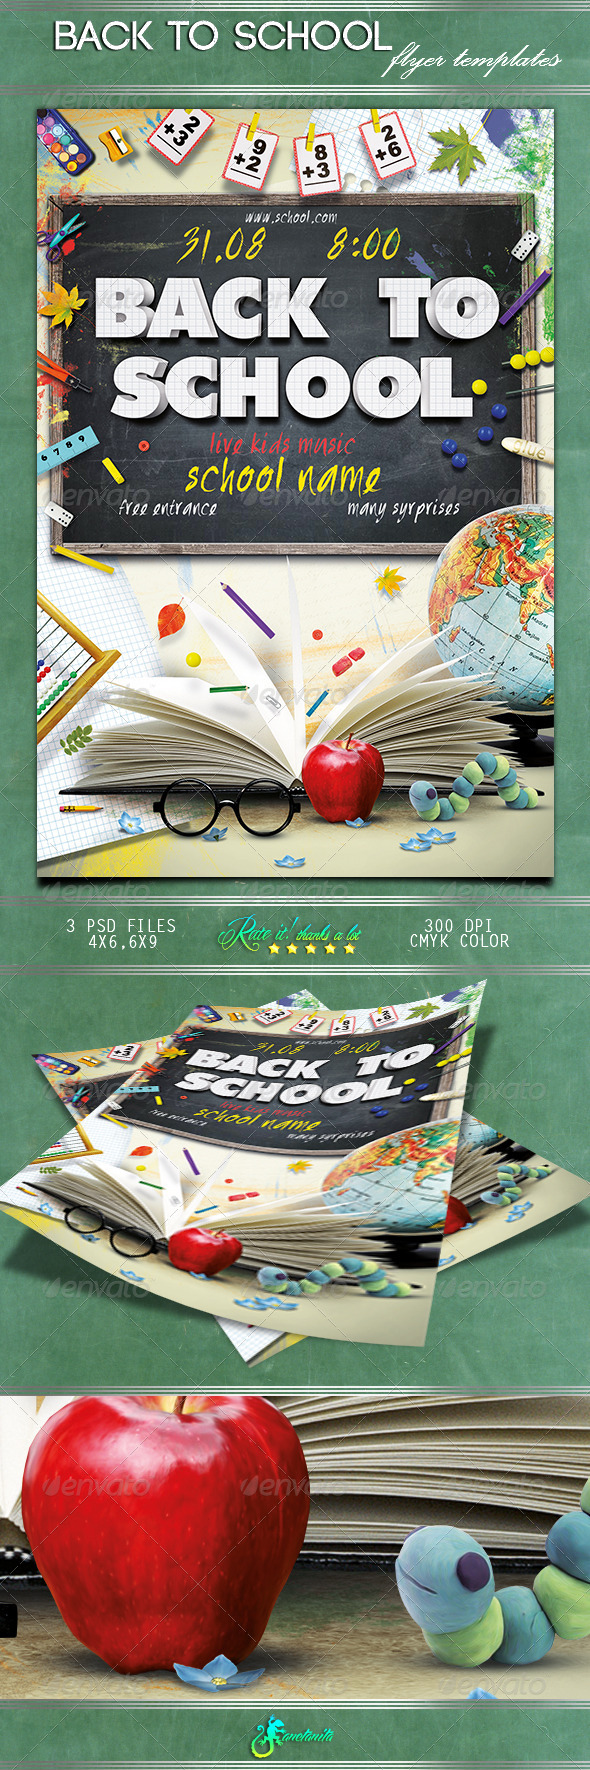 GraphicRiver Back To School Flyer 8597077